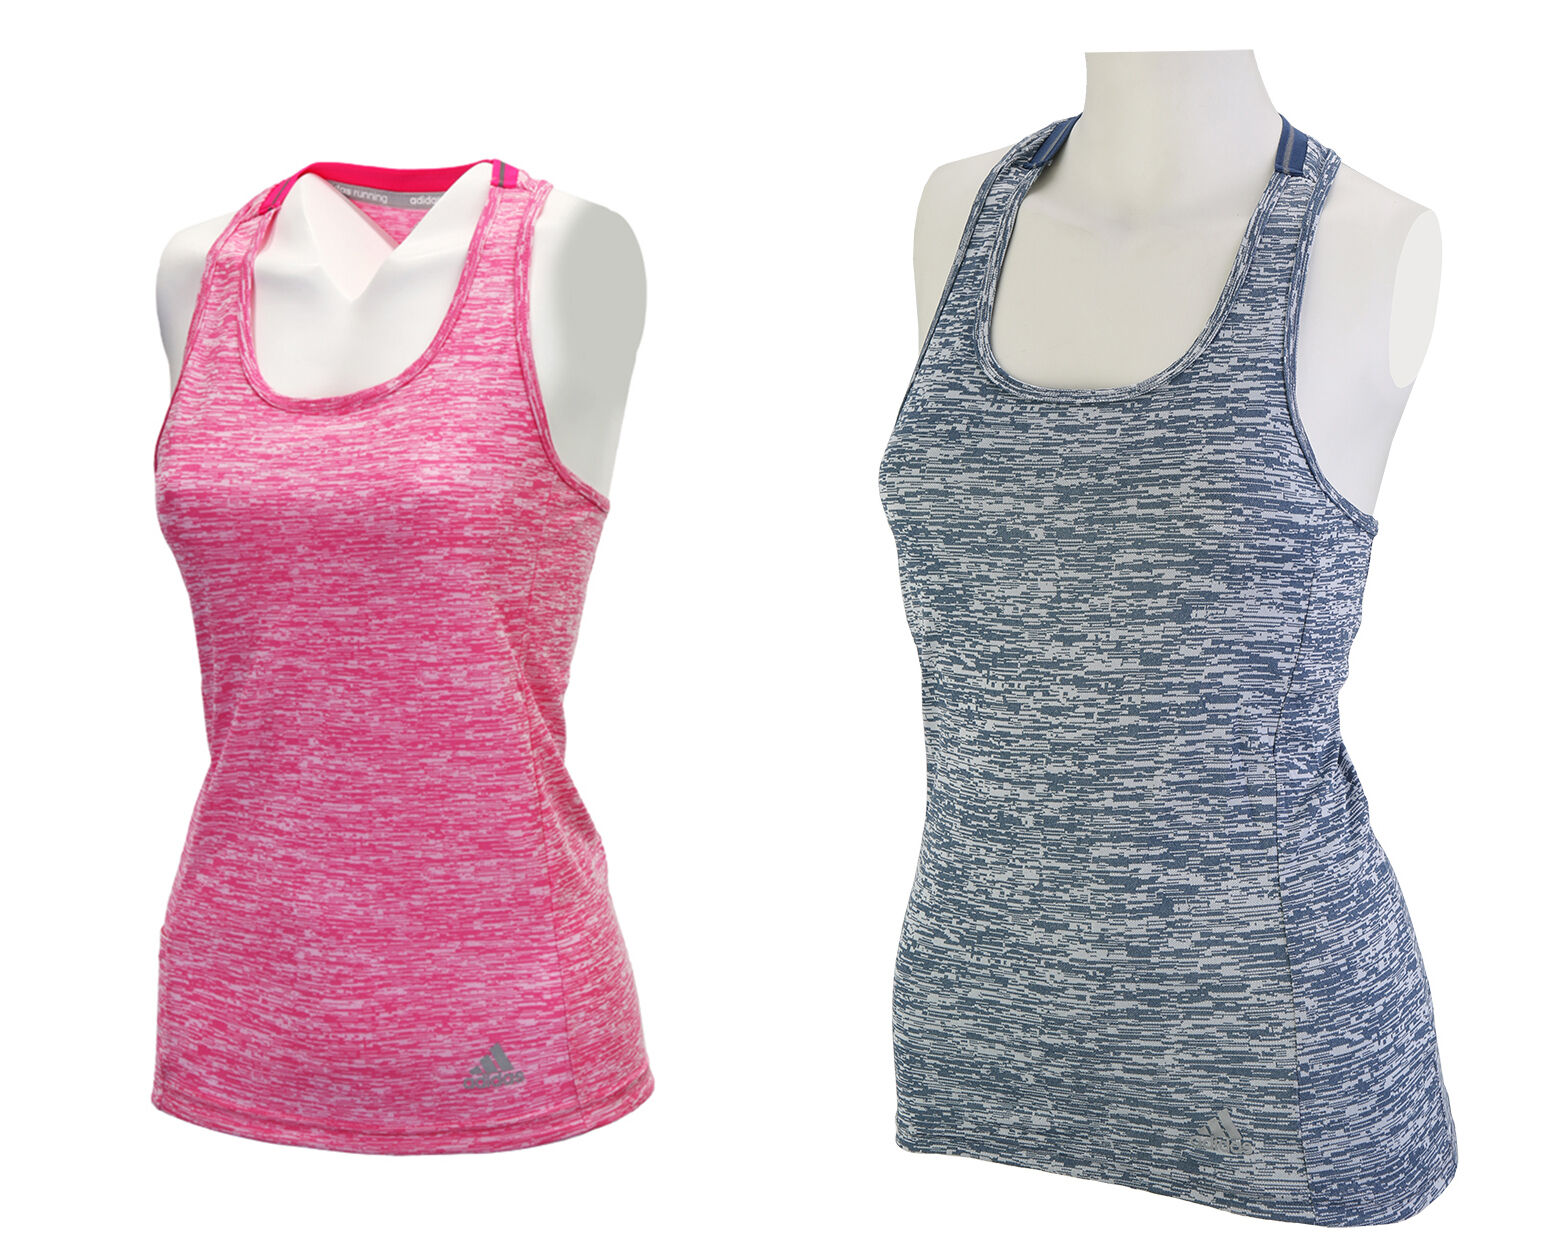 Adidas Women's  Supernova Fitted Tank Top AI7996 AI7993 Yoga Training Sleeveless  a lot of surprises